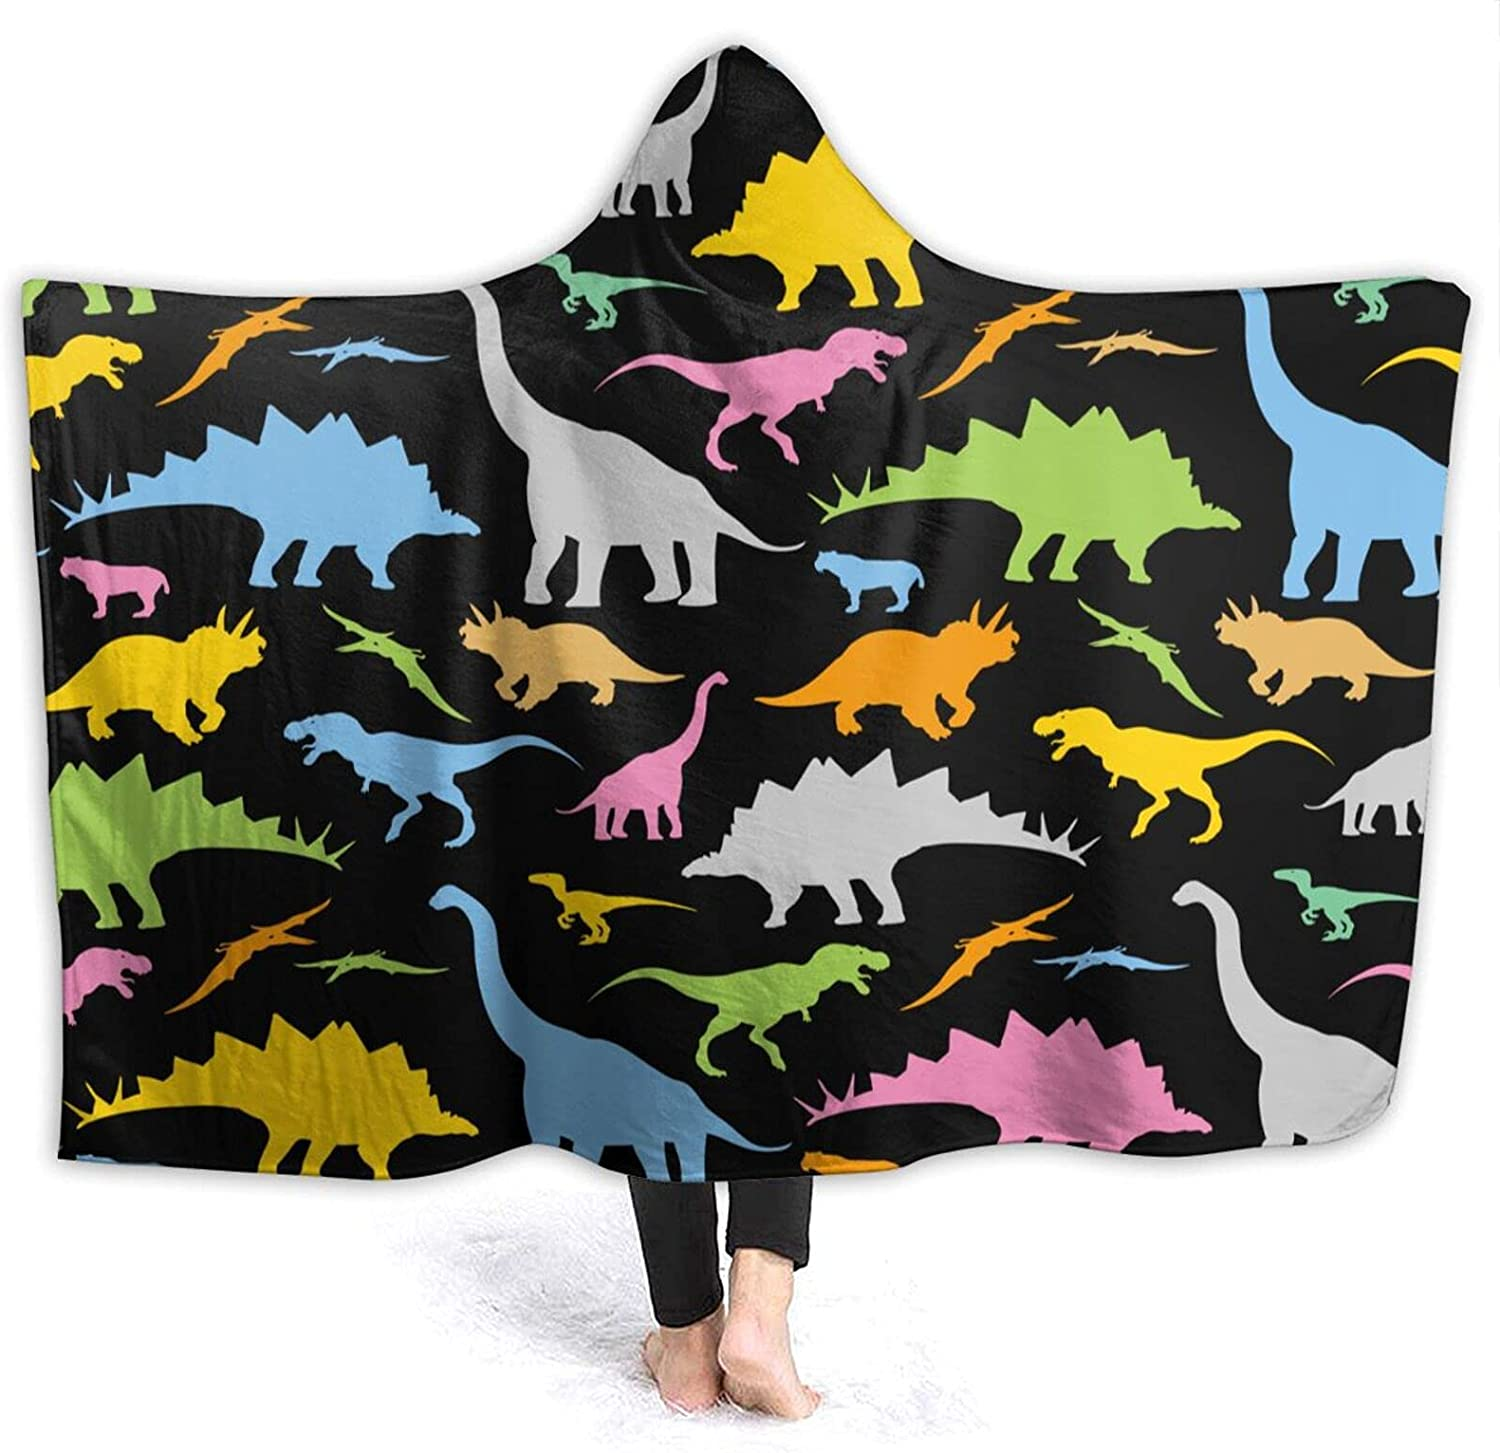 Cute Cartoon Albuquerque Mall Dinosaurs Wearable Blanket Shipping included Hooded Throw Robe Cloak